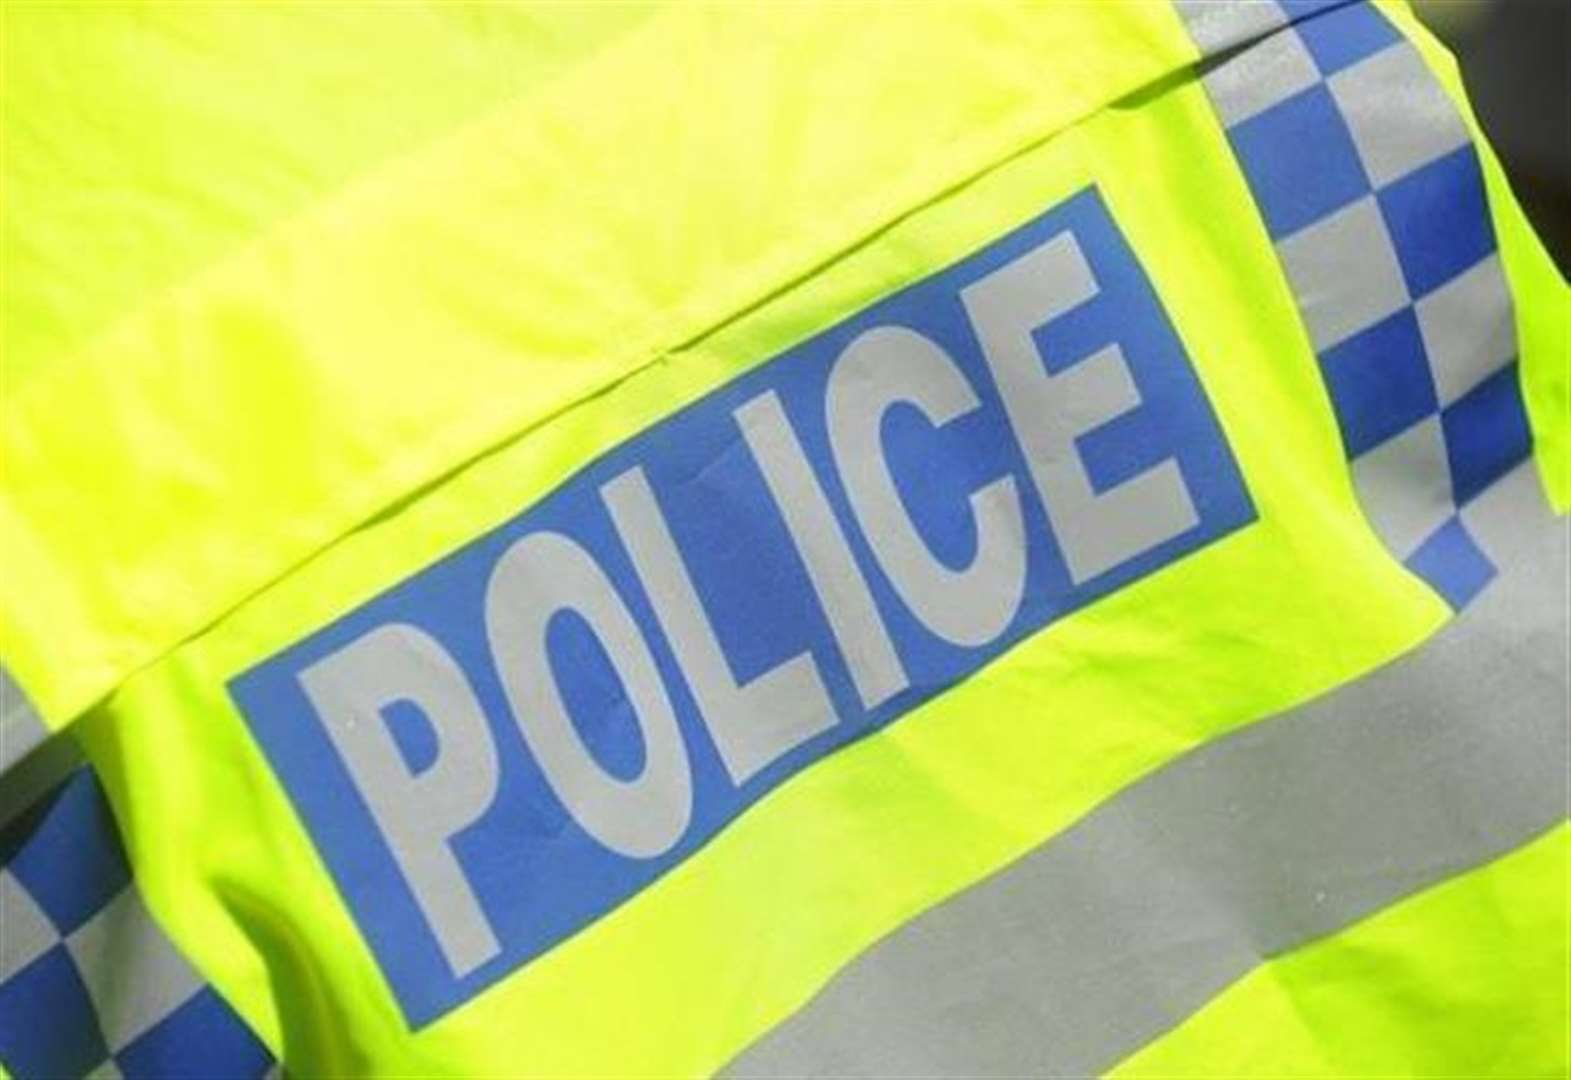 Teenager attacked with baseball bat in Bourne